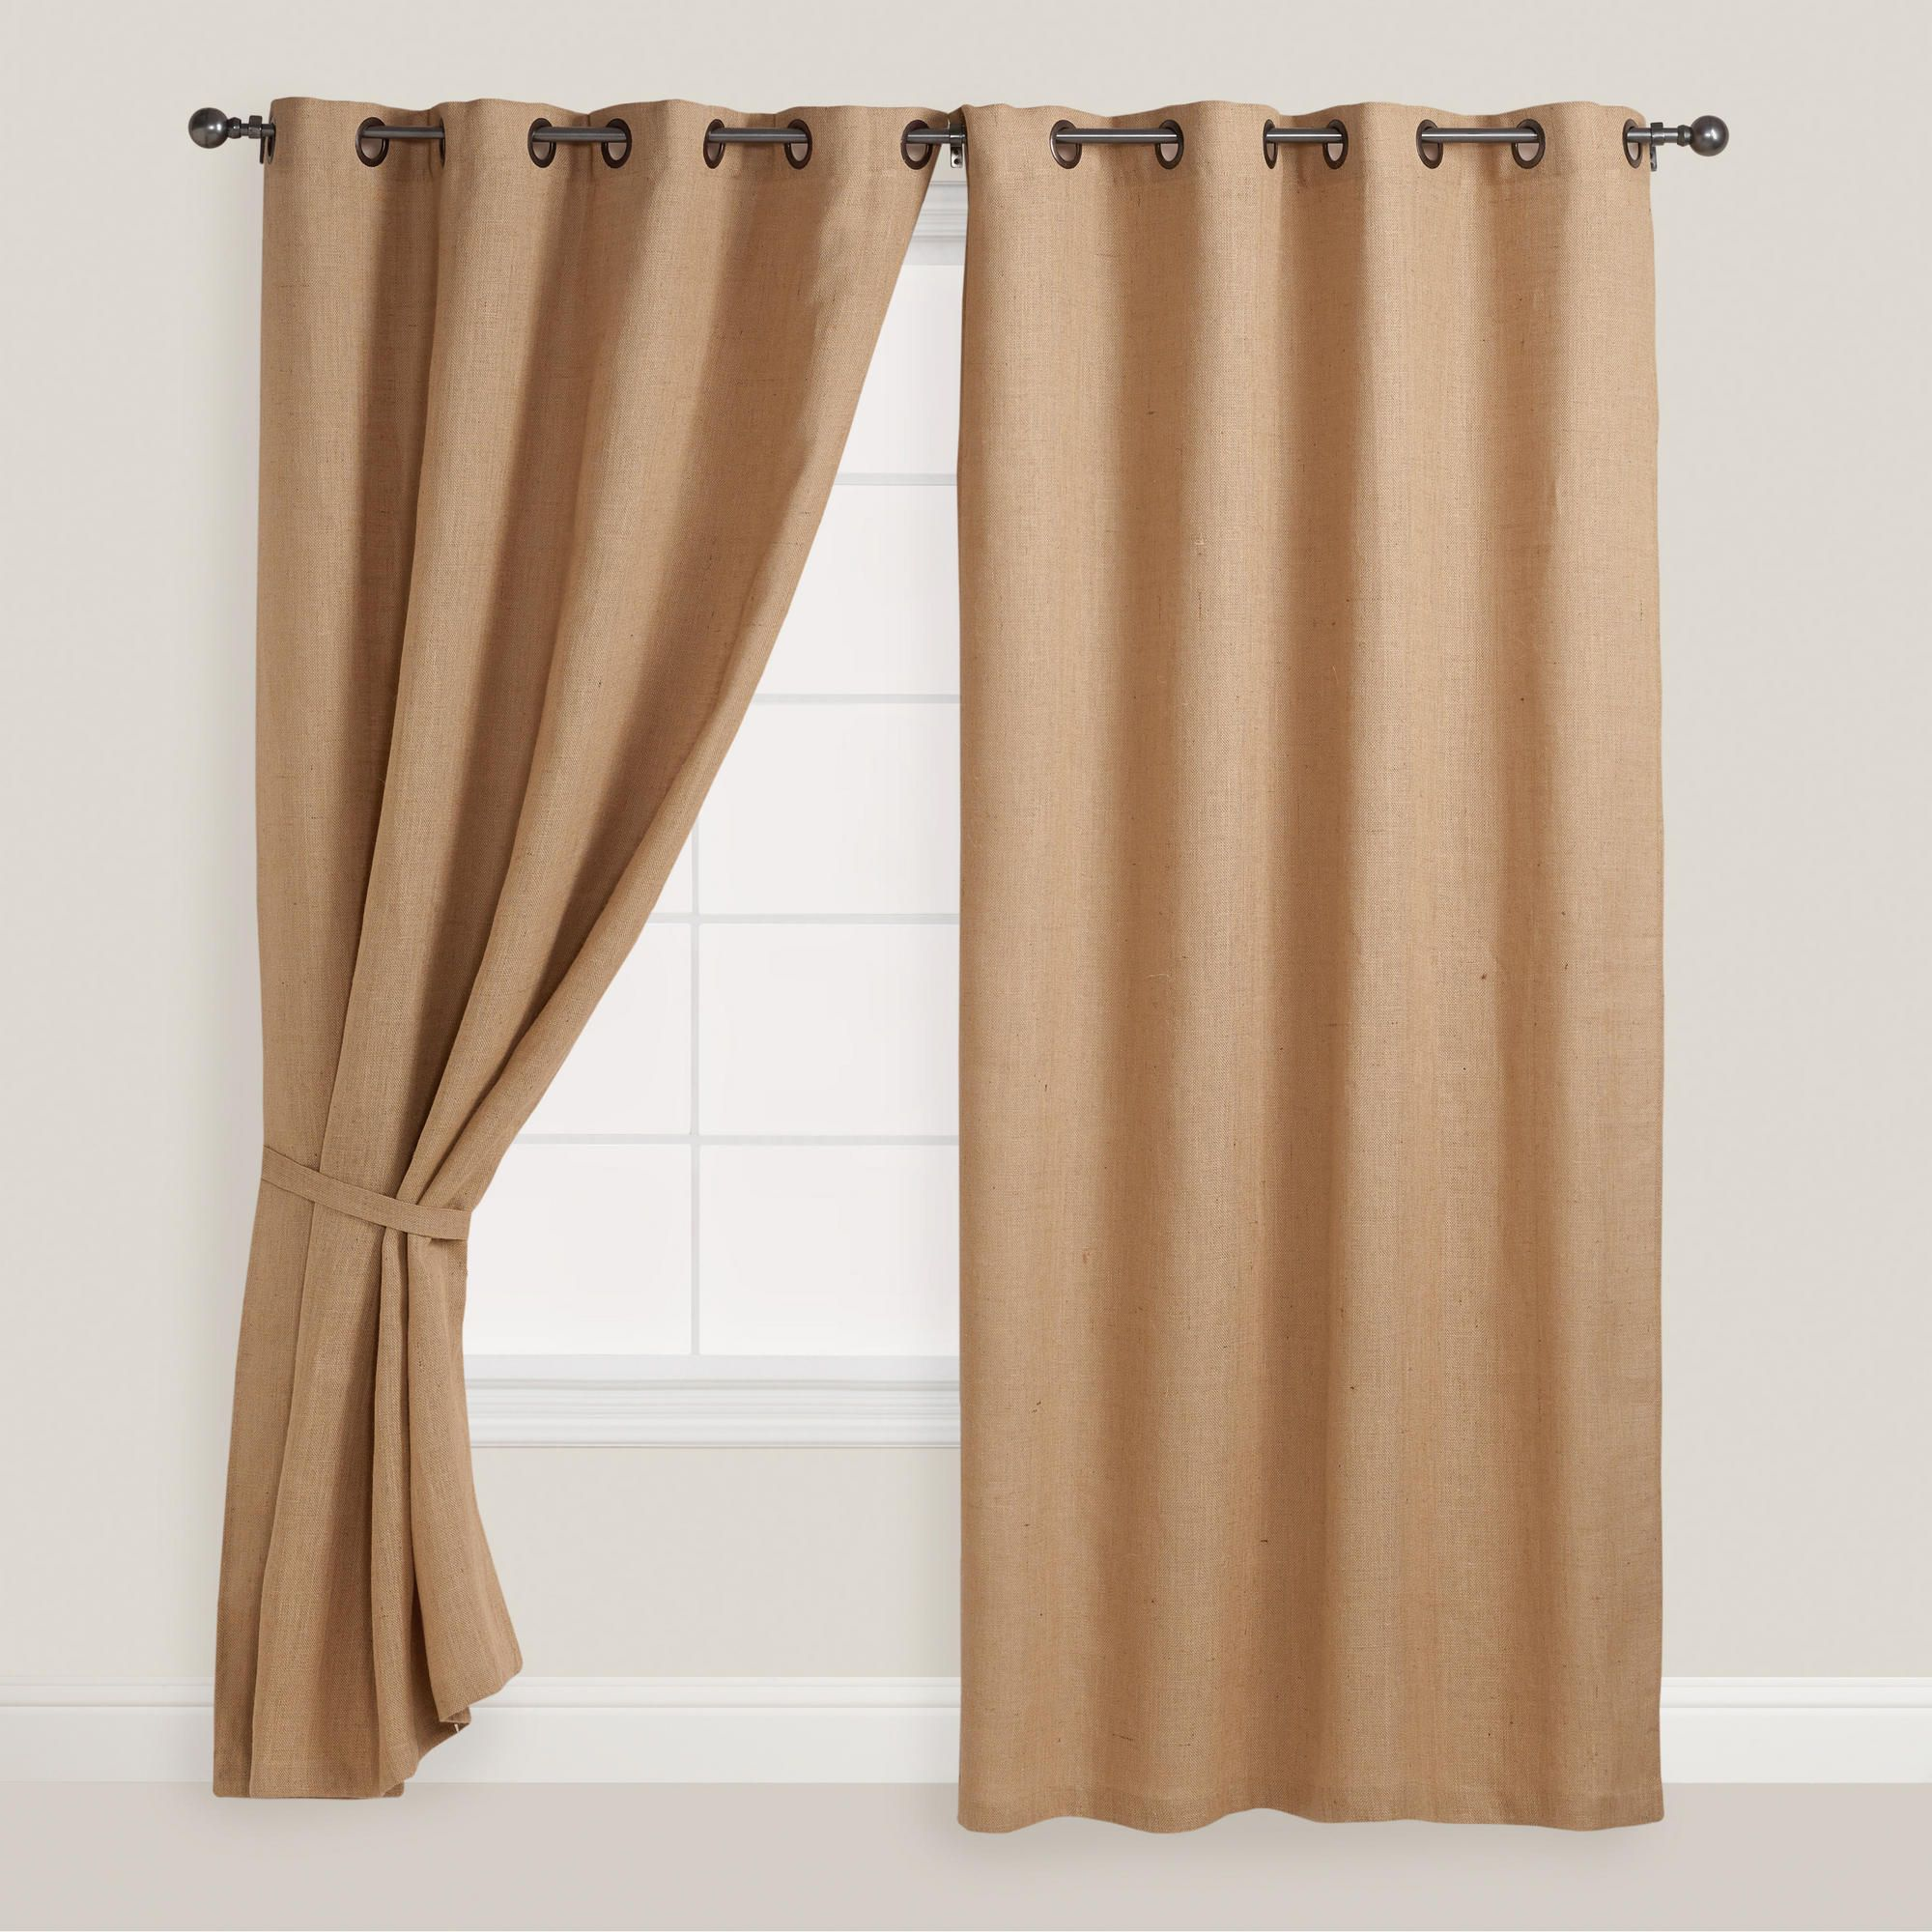 Superior Hemp Burlap Grommet Top Curtain | World Market